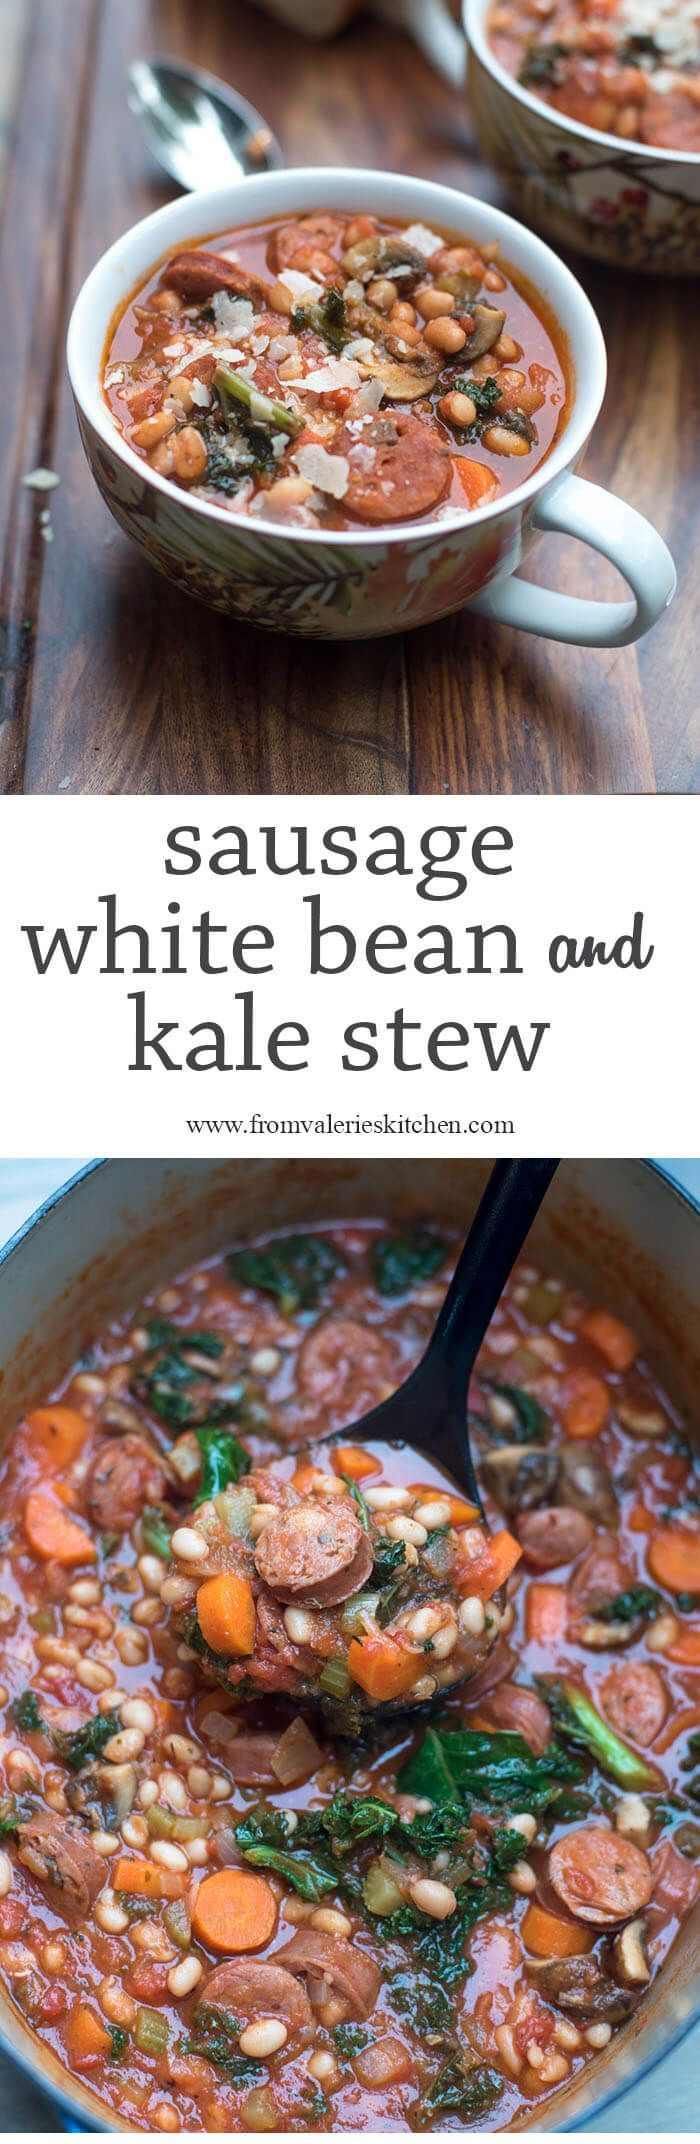 1000+ ideas about Sausage Stew on Pinterest | Stew, Sausages and Soups